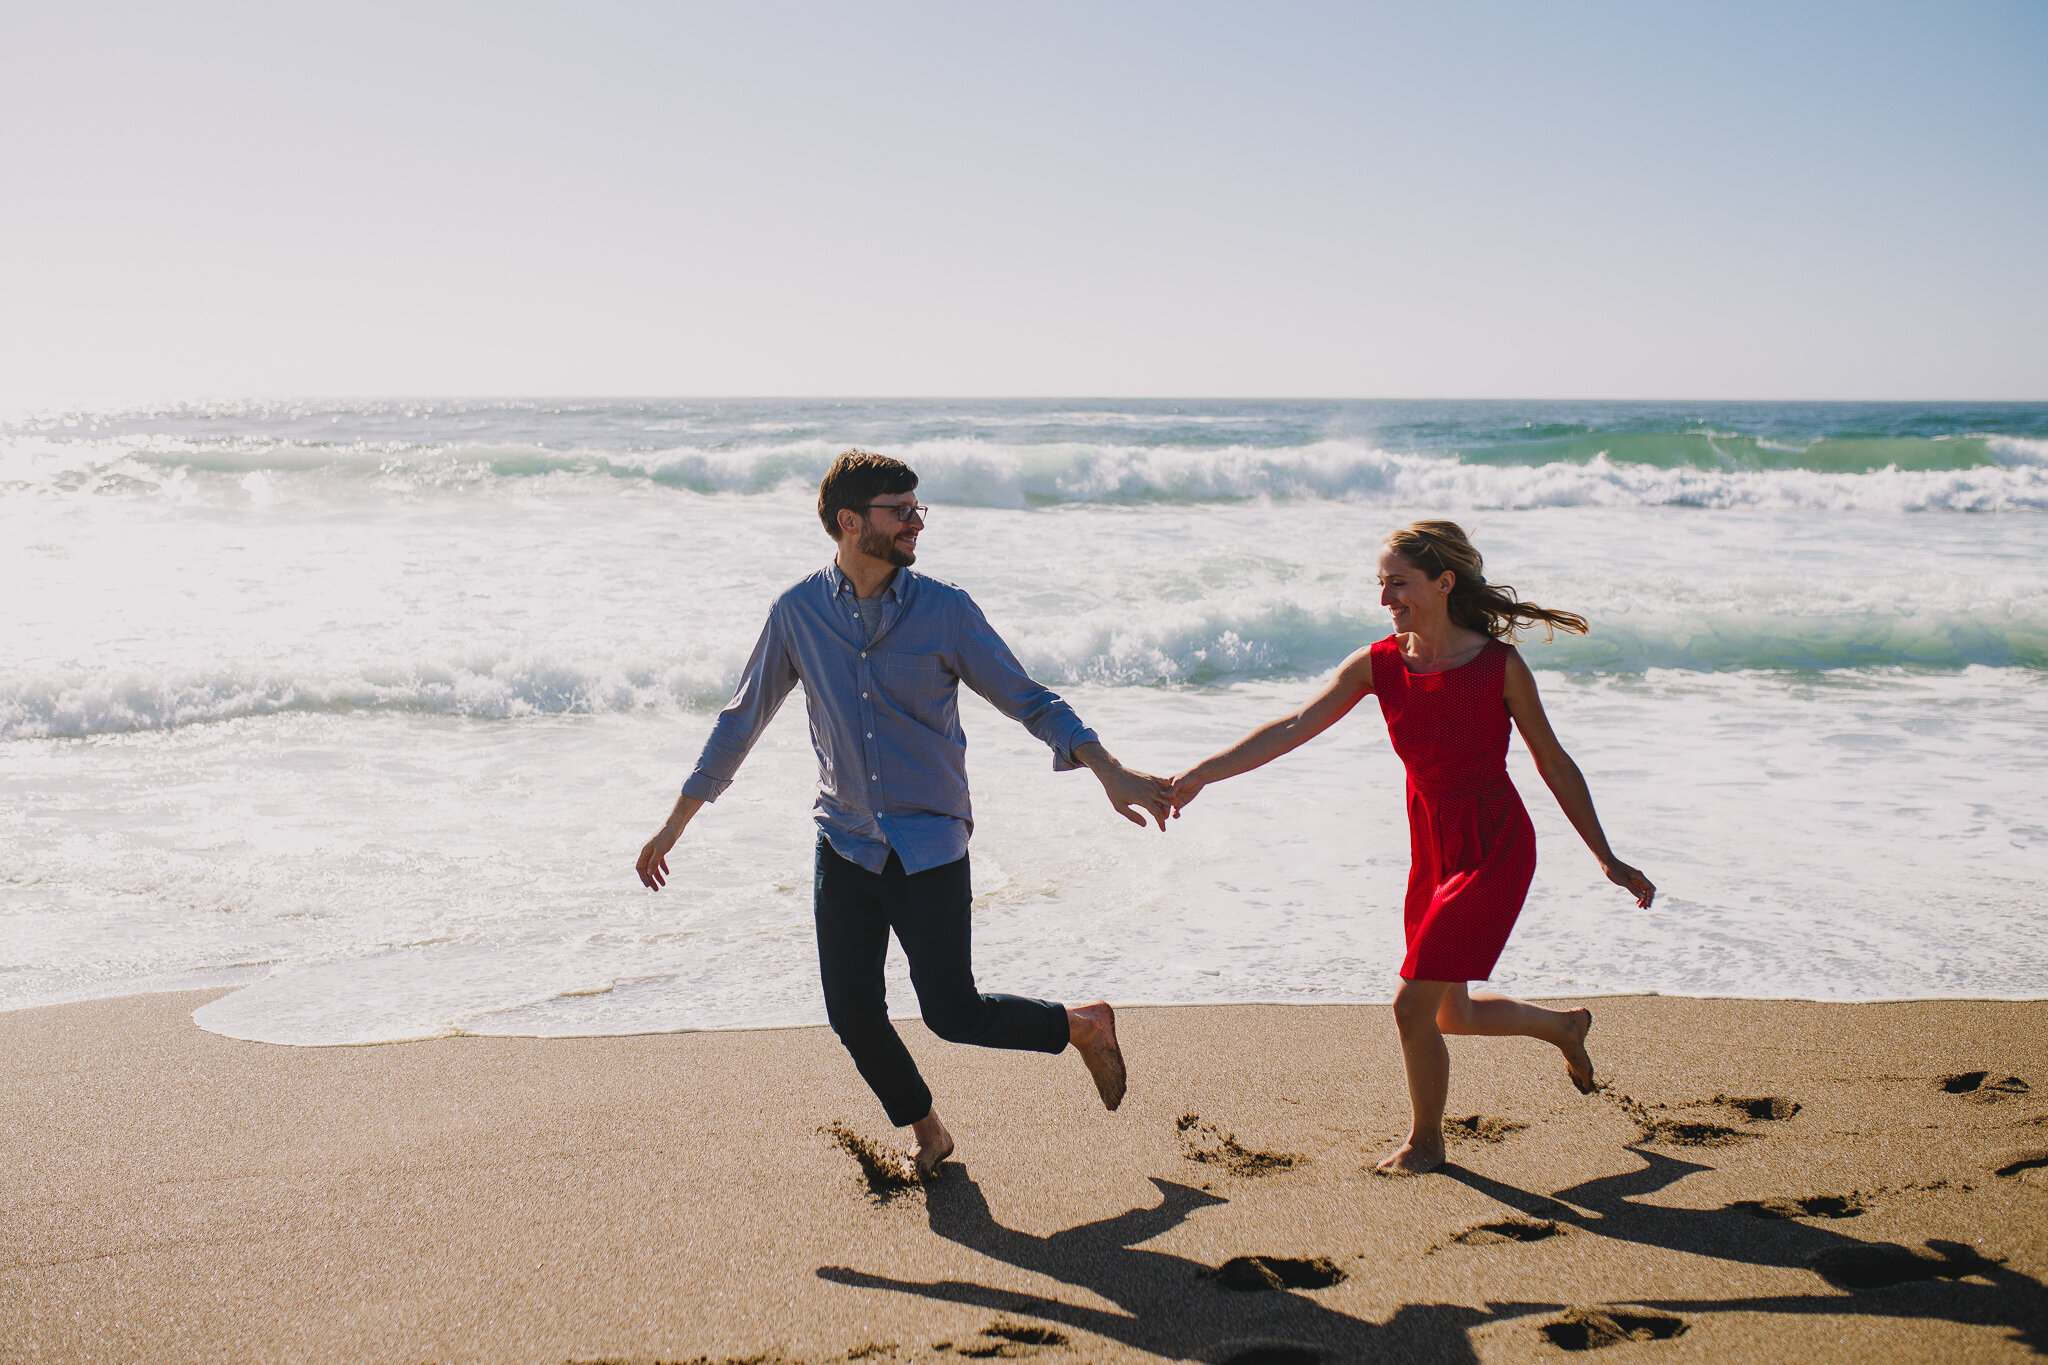 Archer+Inspired+Photography+Point+Reyes+Station+Marin+County+Larkspur+Wedding+Engagement+Lifestyle+Affordable+Photographer-47.jpg